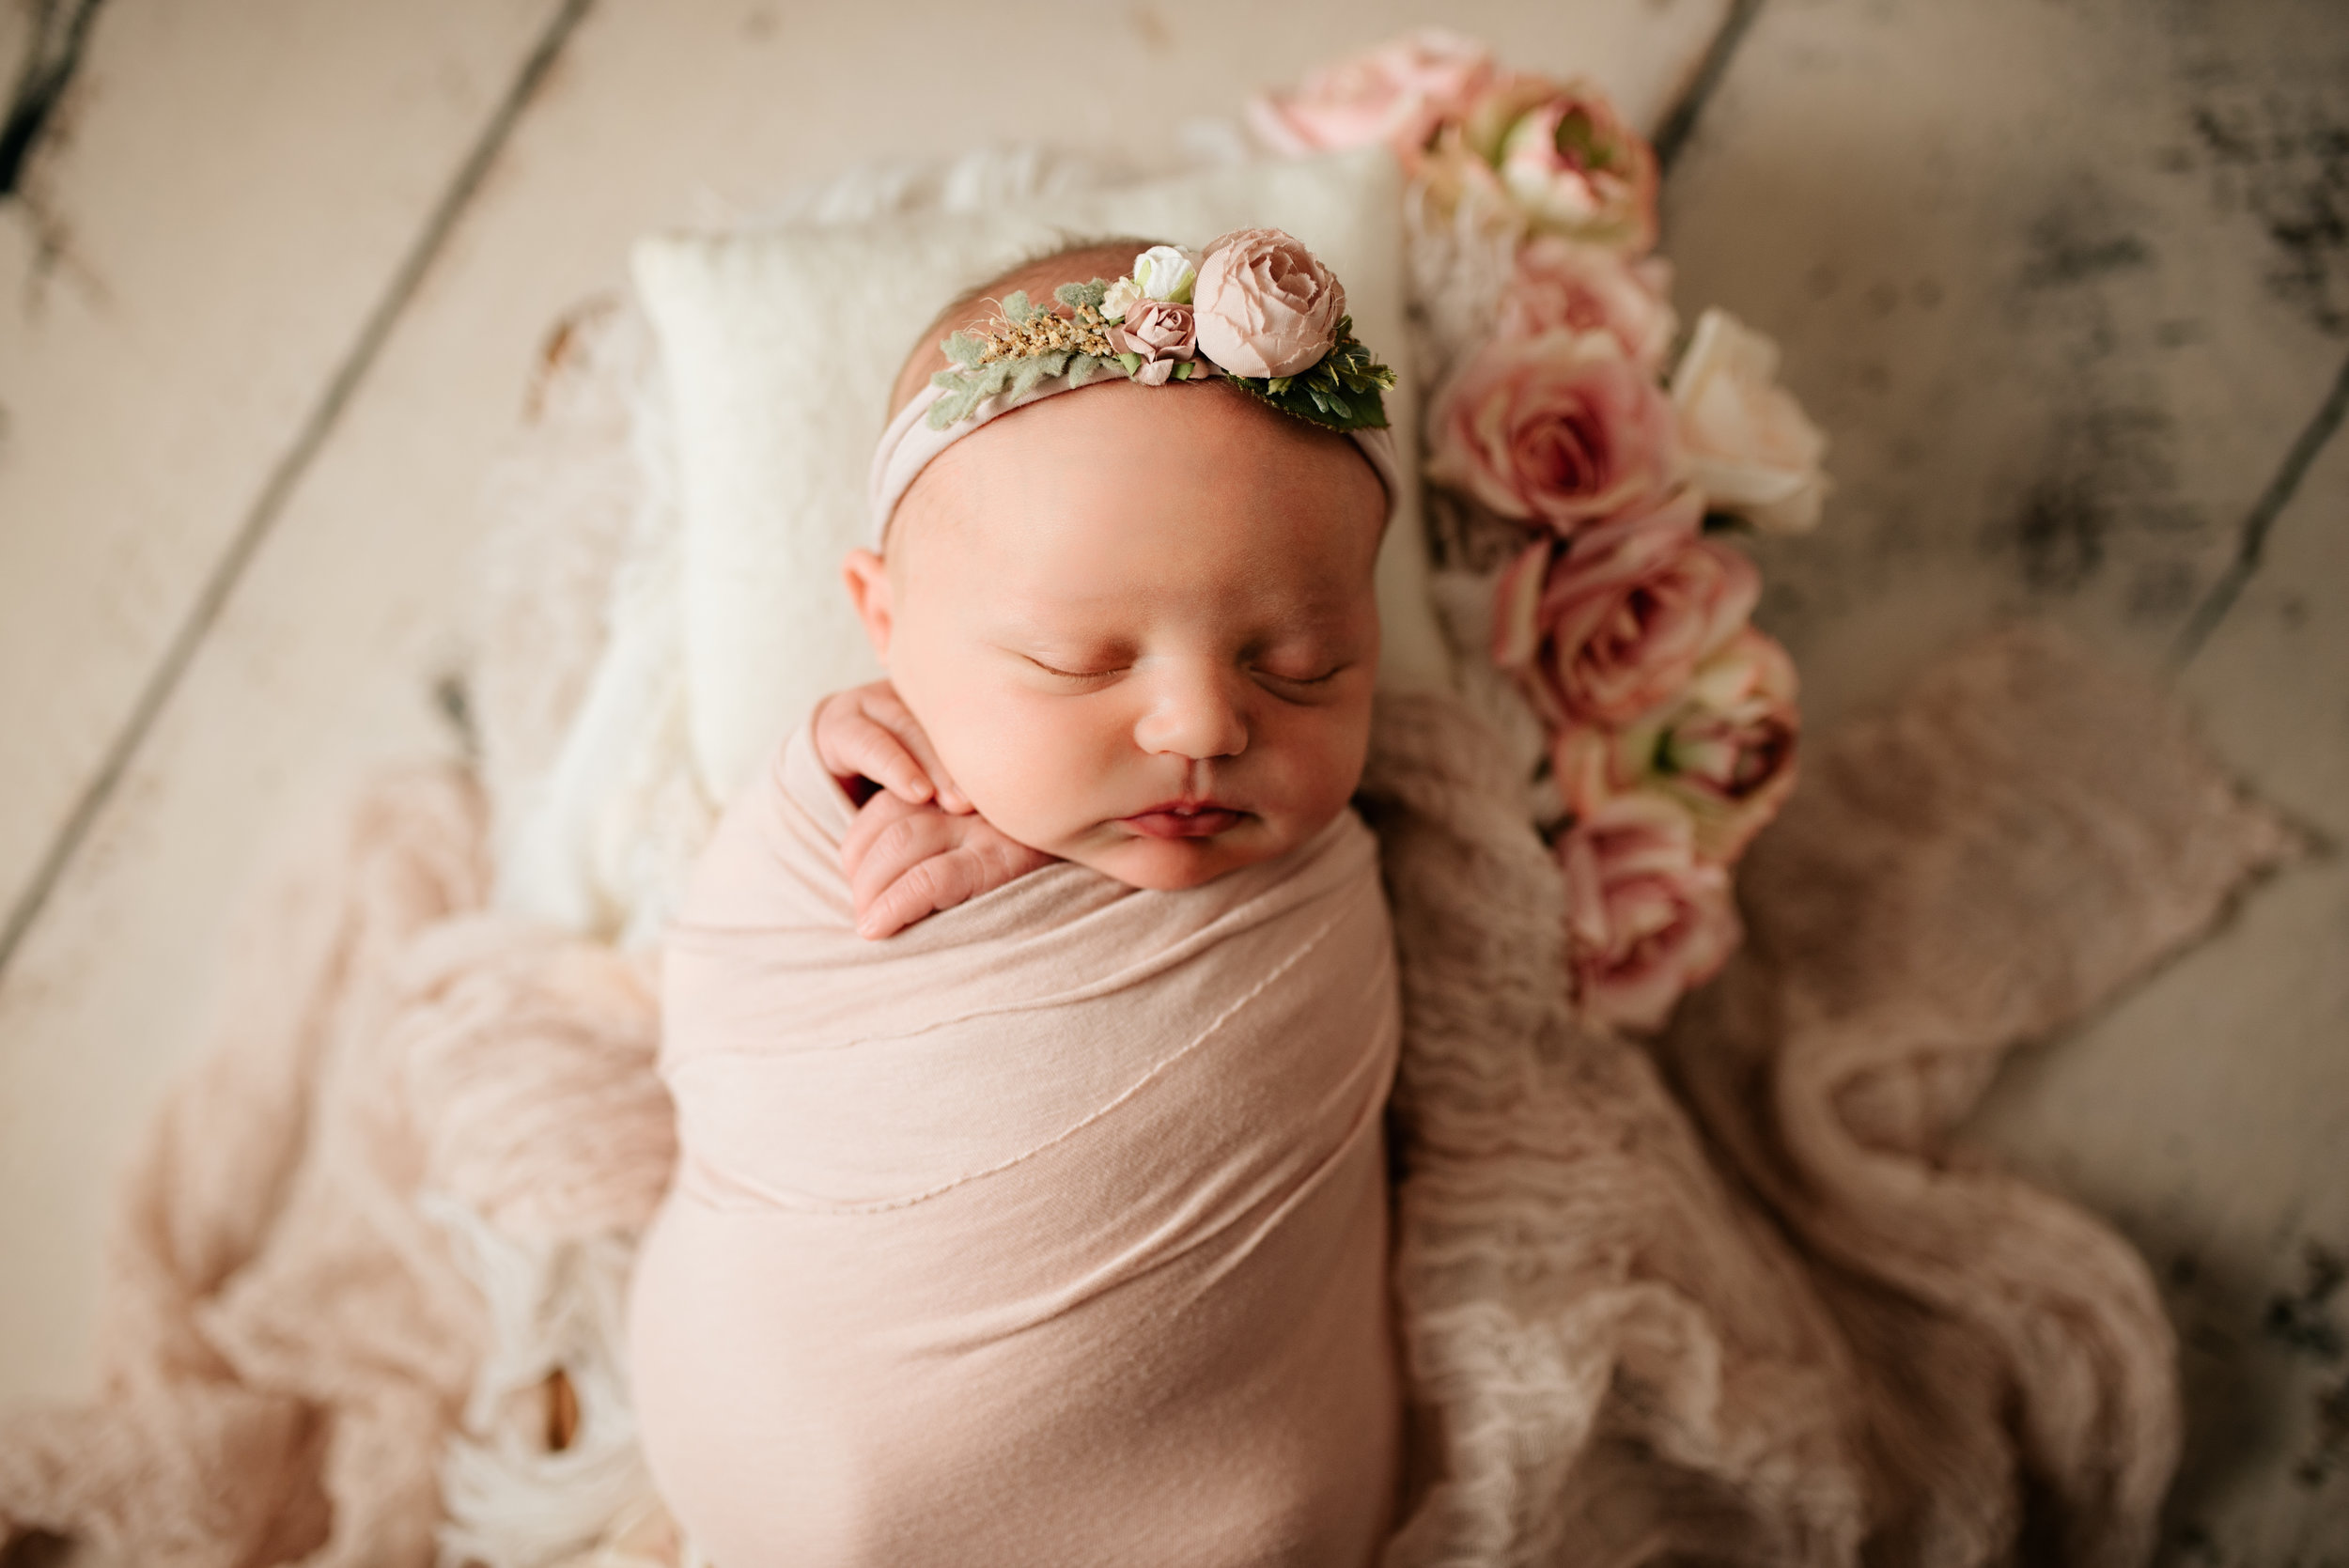 Newborn_Alannah_8Days-10.jpg